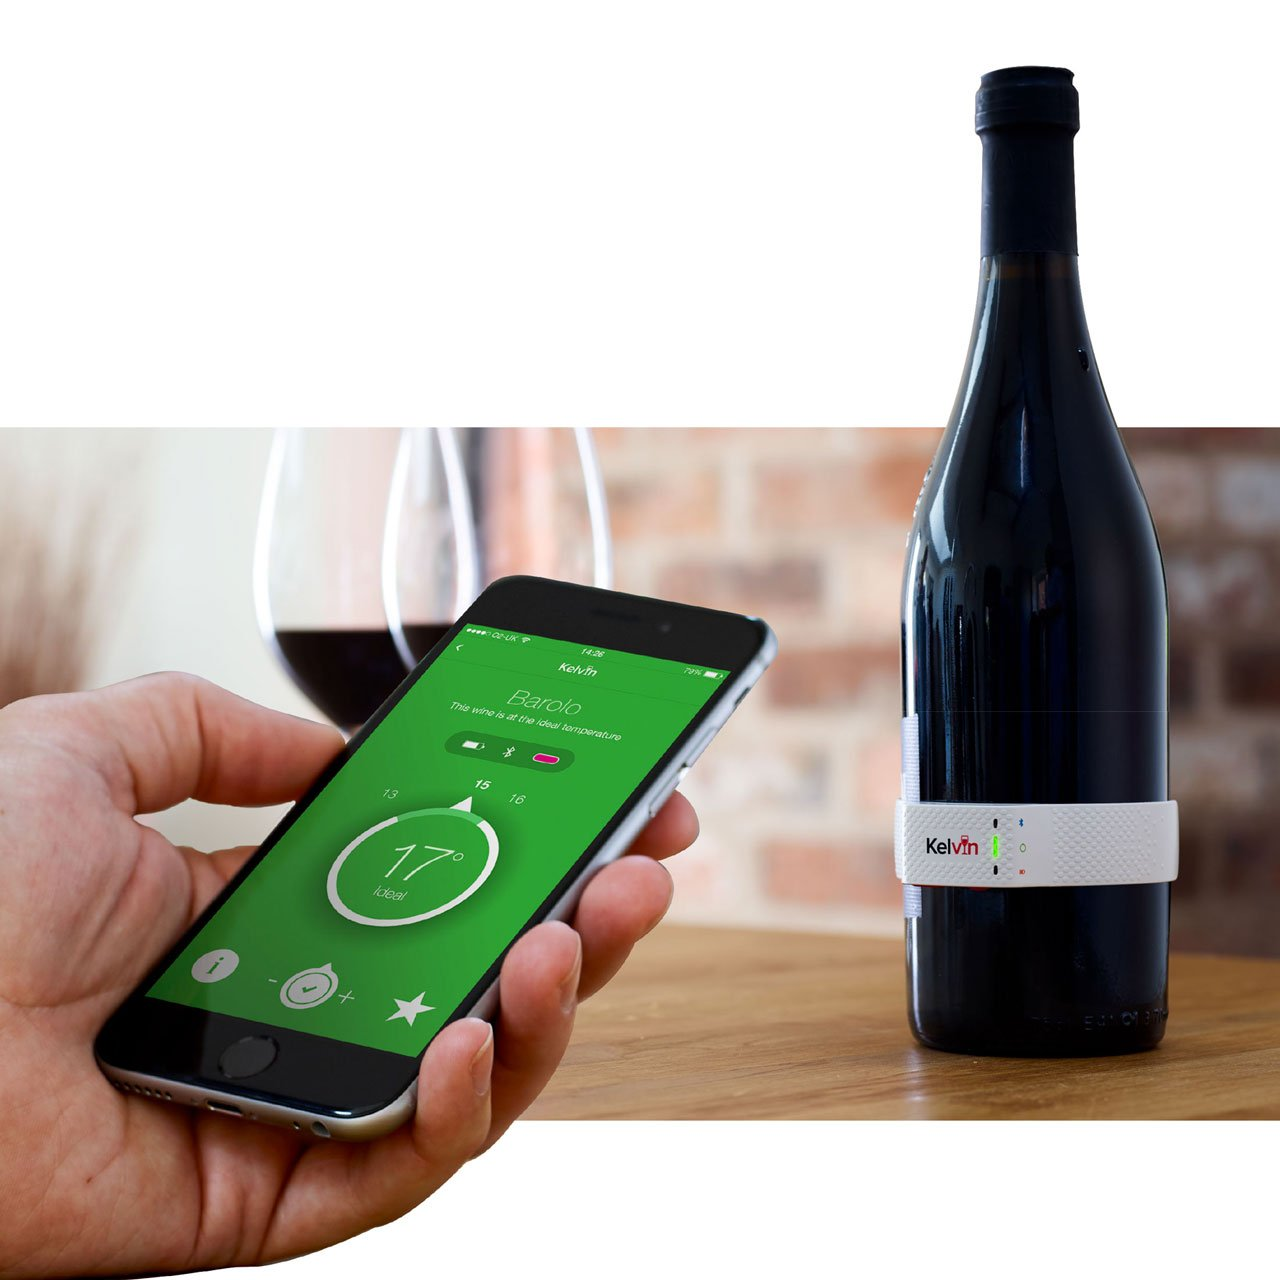 Techy Tuesday - Smart Wine Thermometer